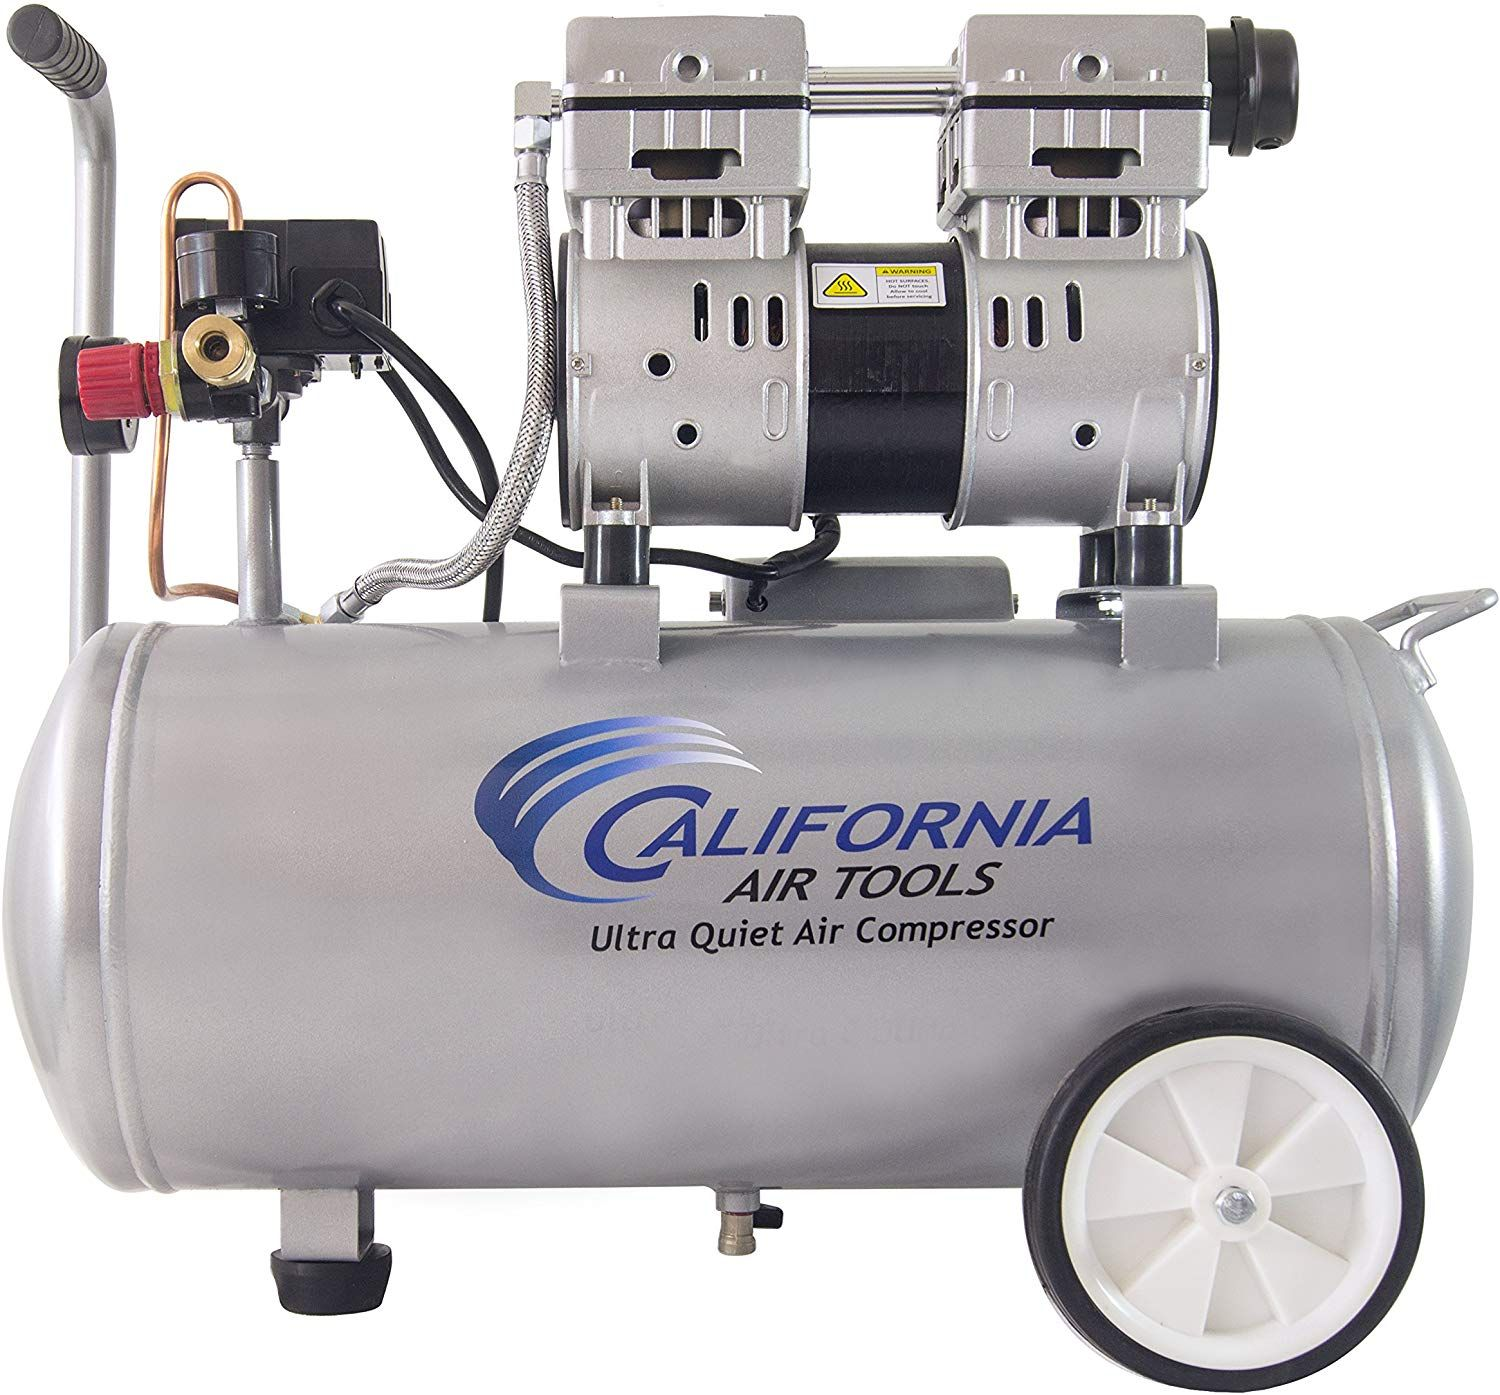 Best California Air Compressor Review 2020 in 2020 Air